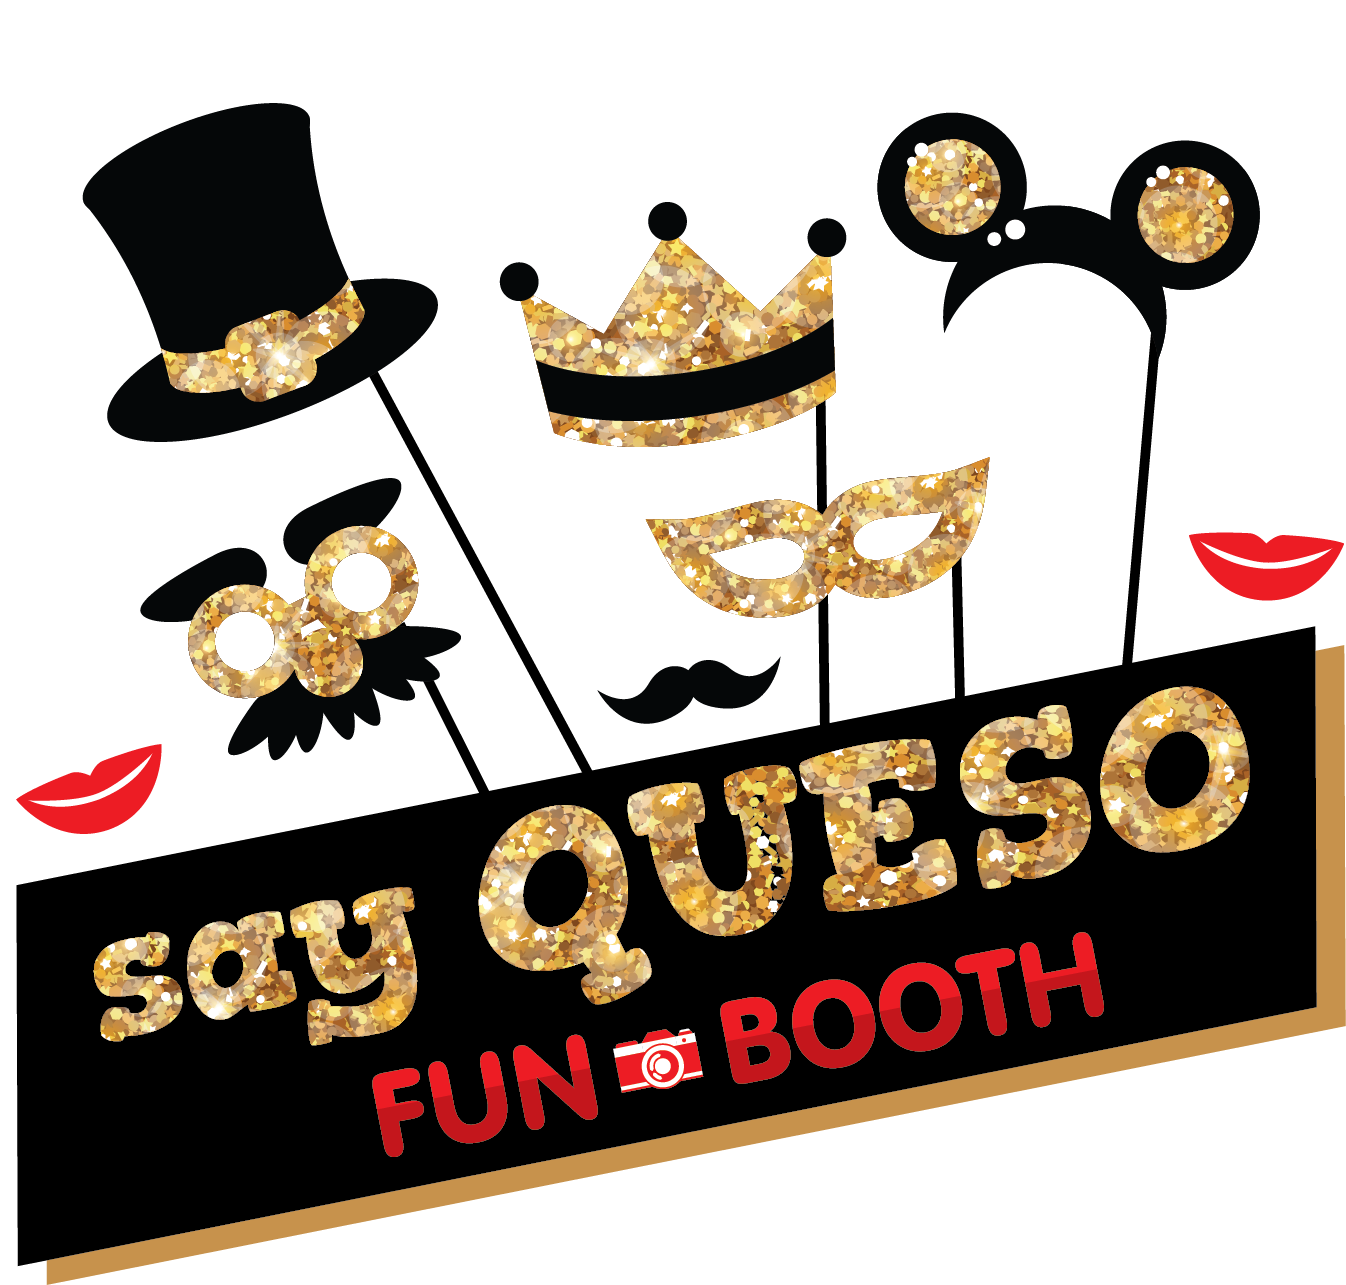 Say Queso Fun Booth